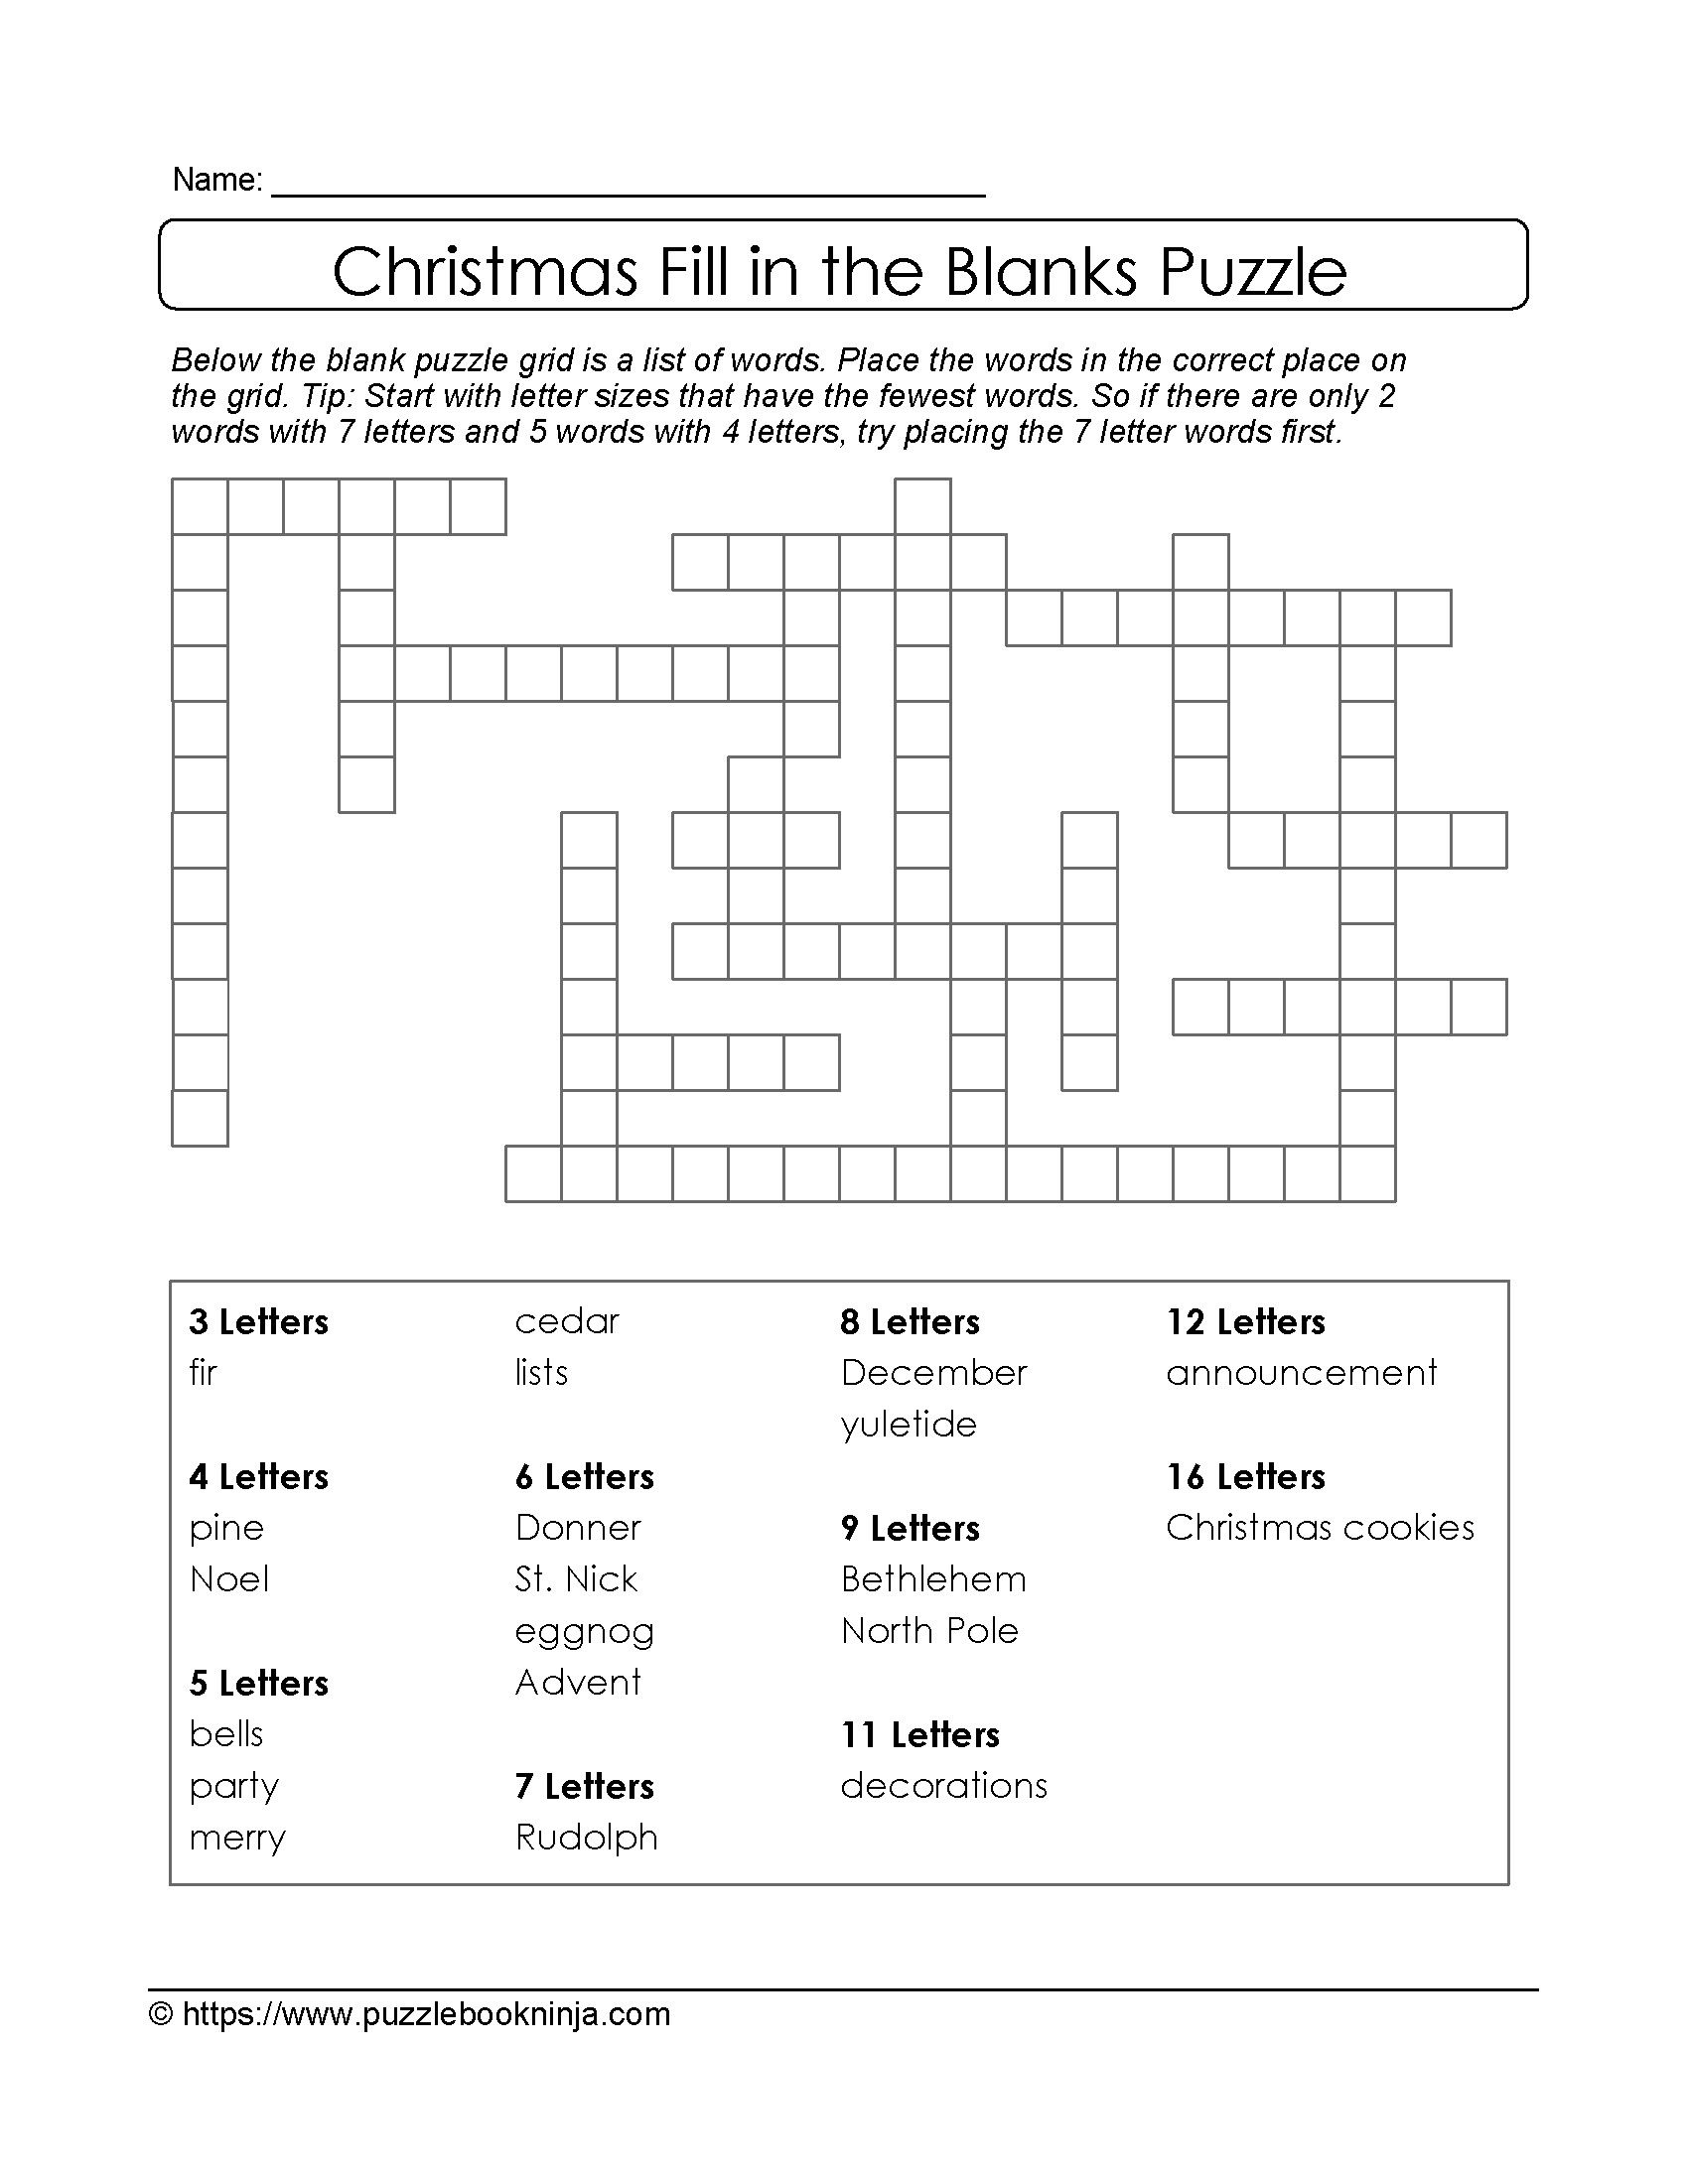 Christmas Printable Puzzle. Free Fill In The Blanks. | Christmas - Printable Puzzles Hints